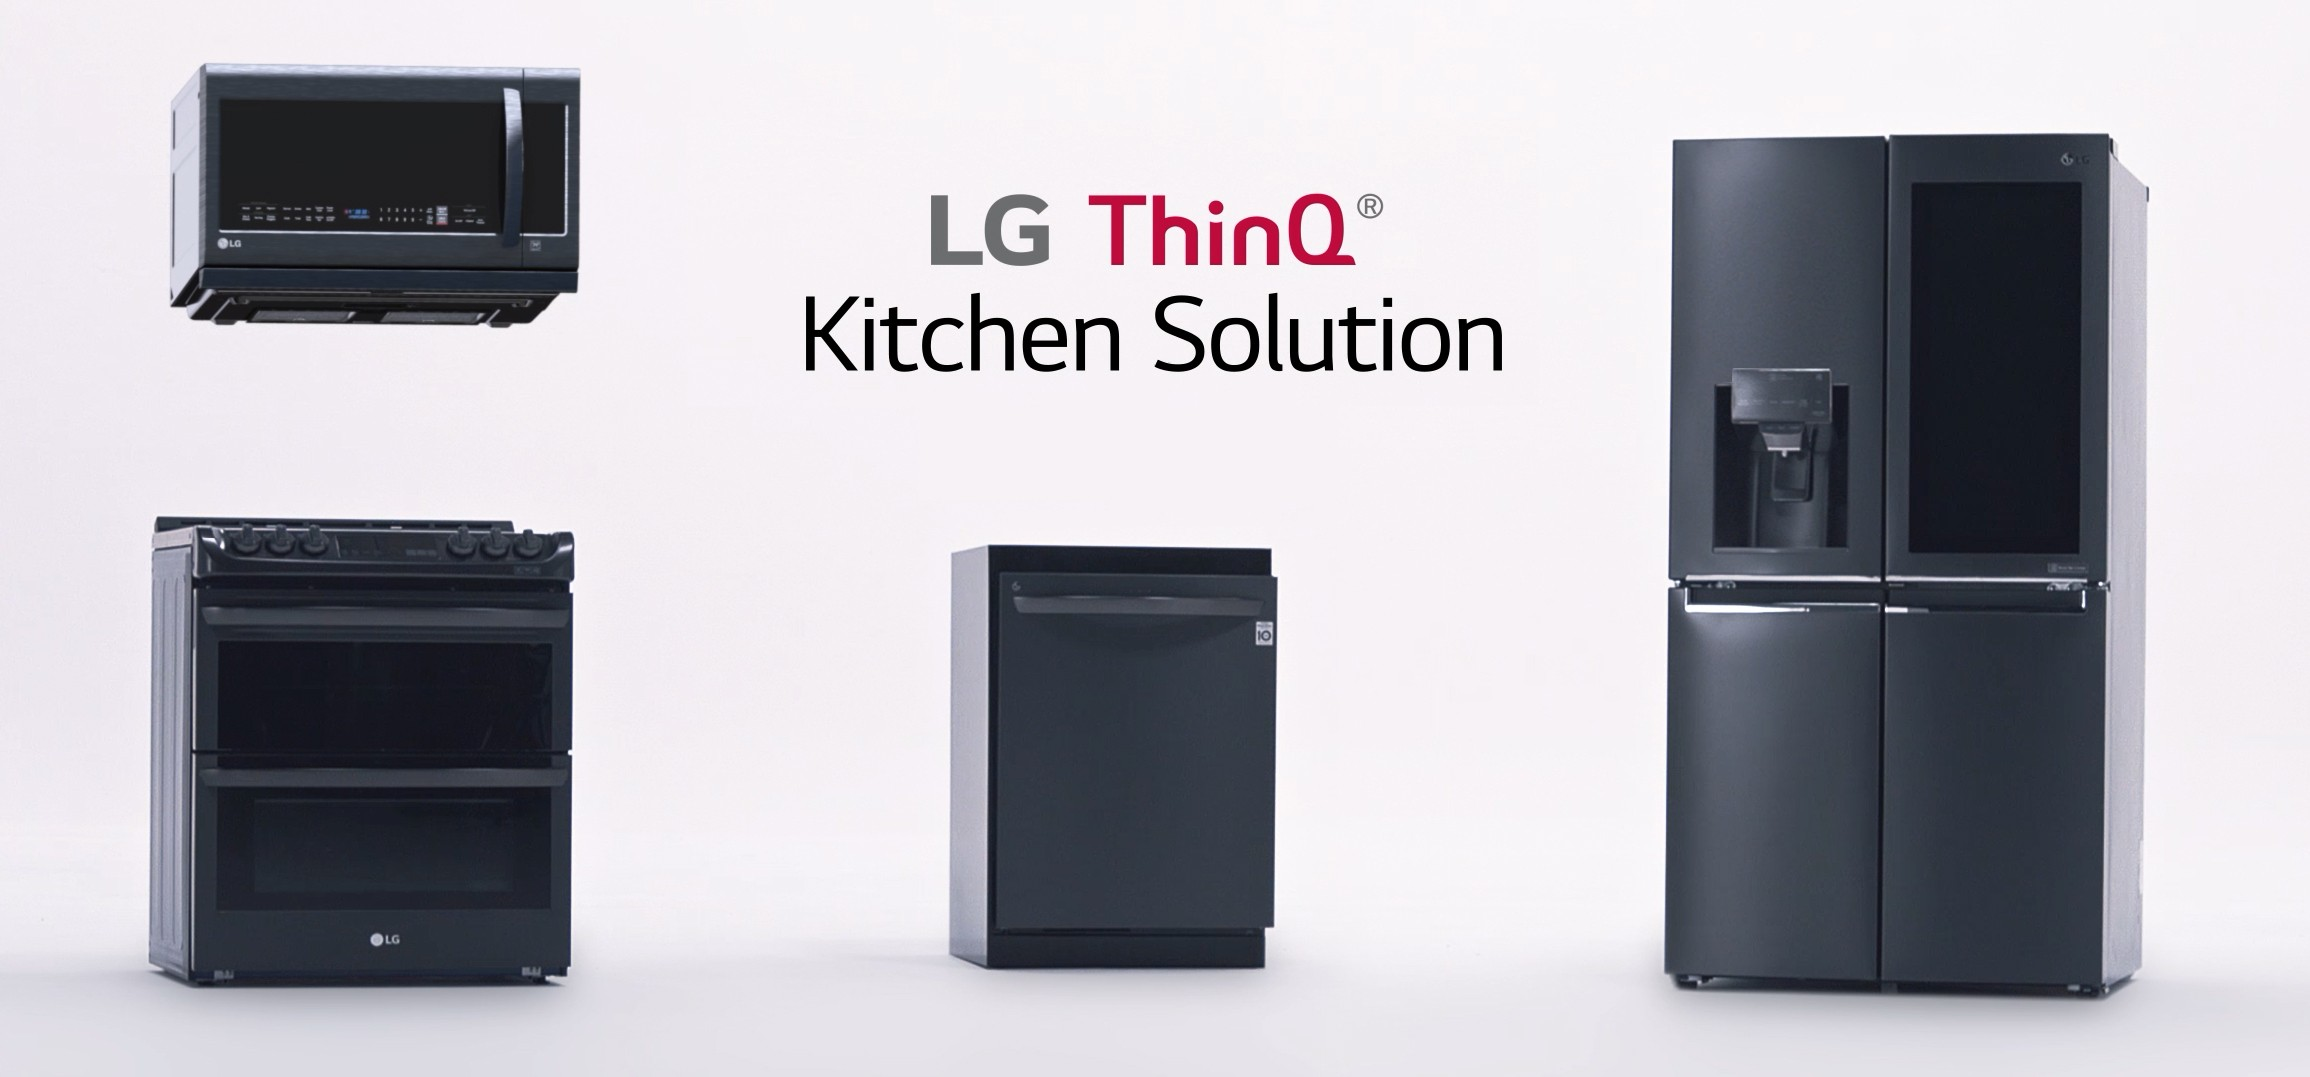 lg s connected appliance network makes the future kitchen more delightful lg newsroom. Black Bedroom Furniture Sets. Home Design Ideas